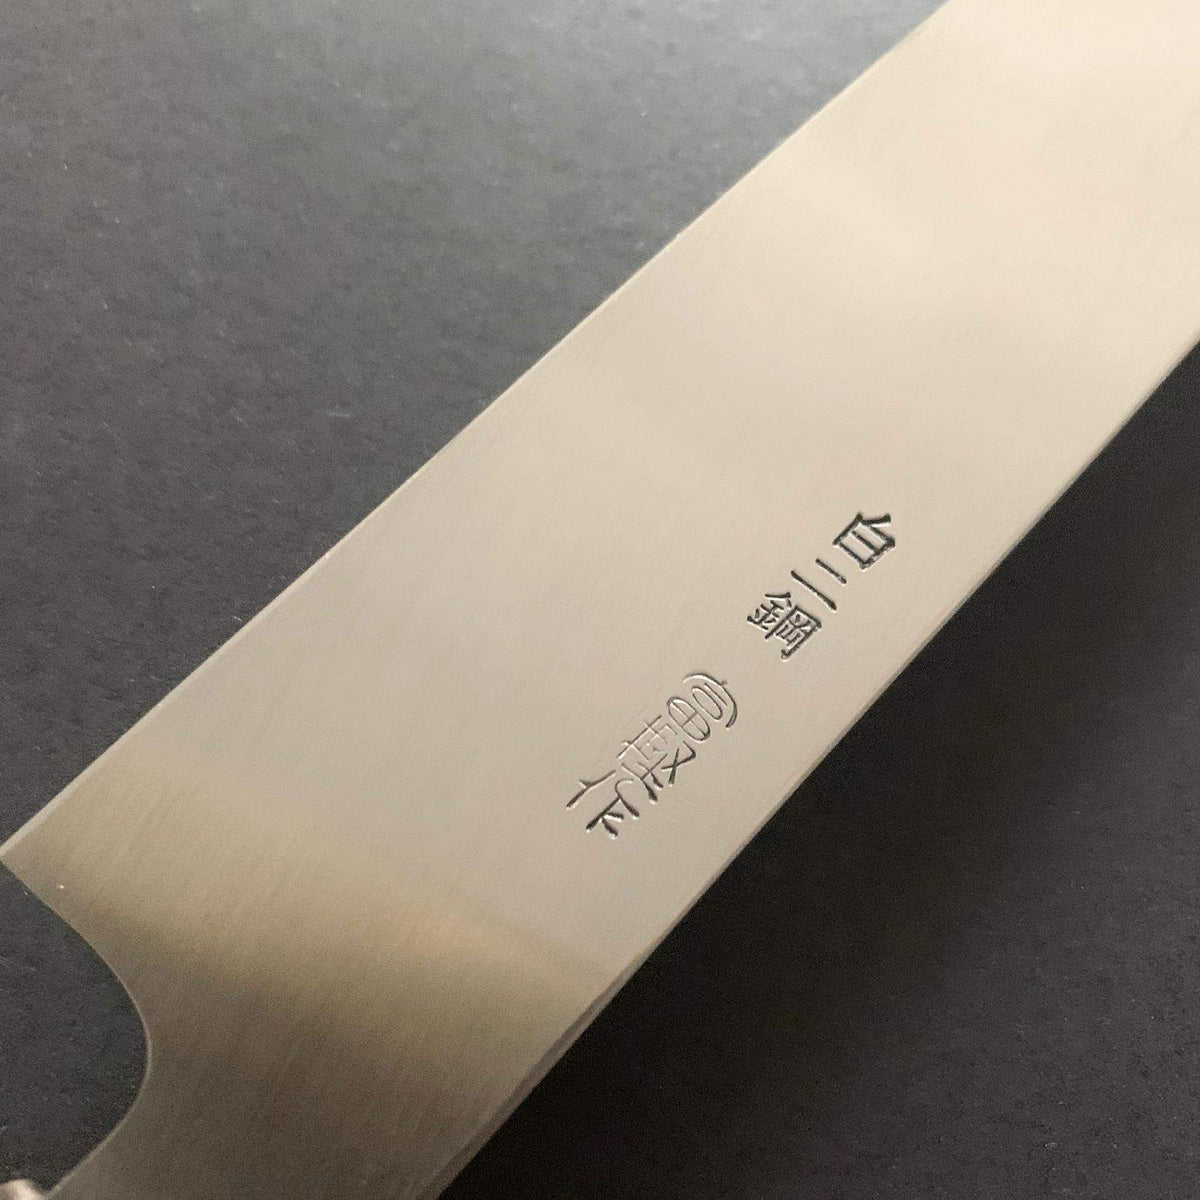 Sakimaru knife, Shirogami 2 Honyaki, mirror finish  - Togashi Kenji